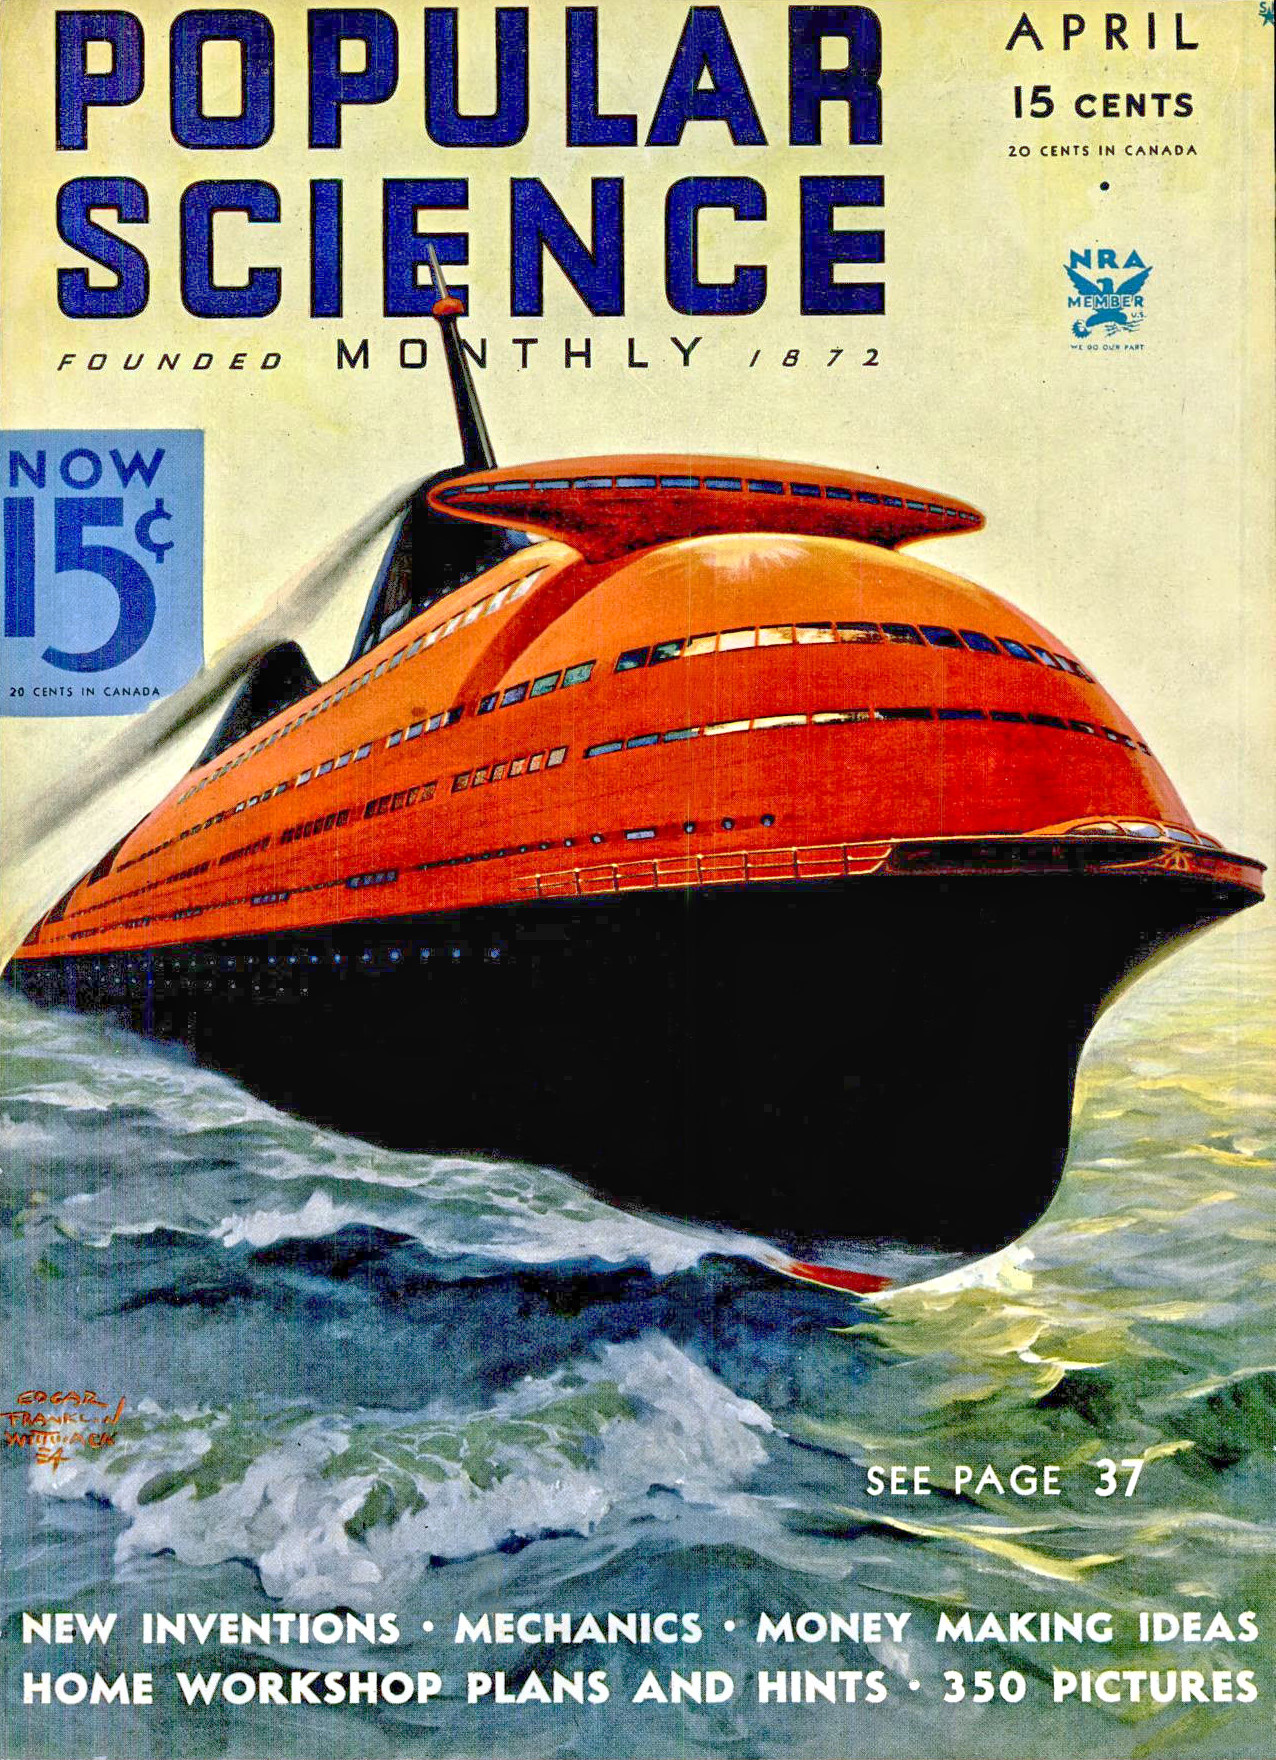 If I like Popular Science what other magazines I might like?